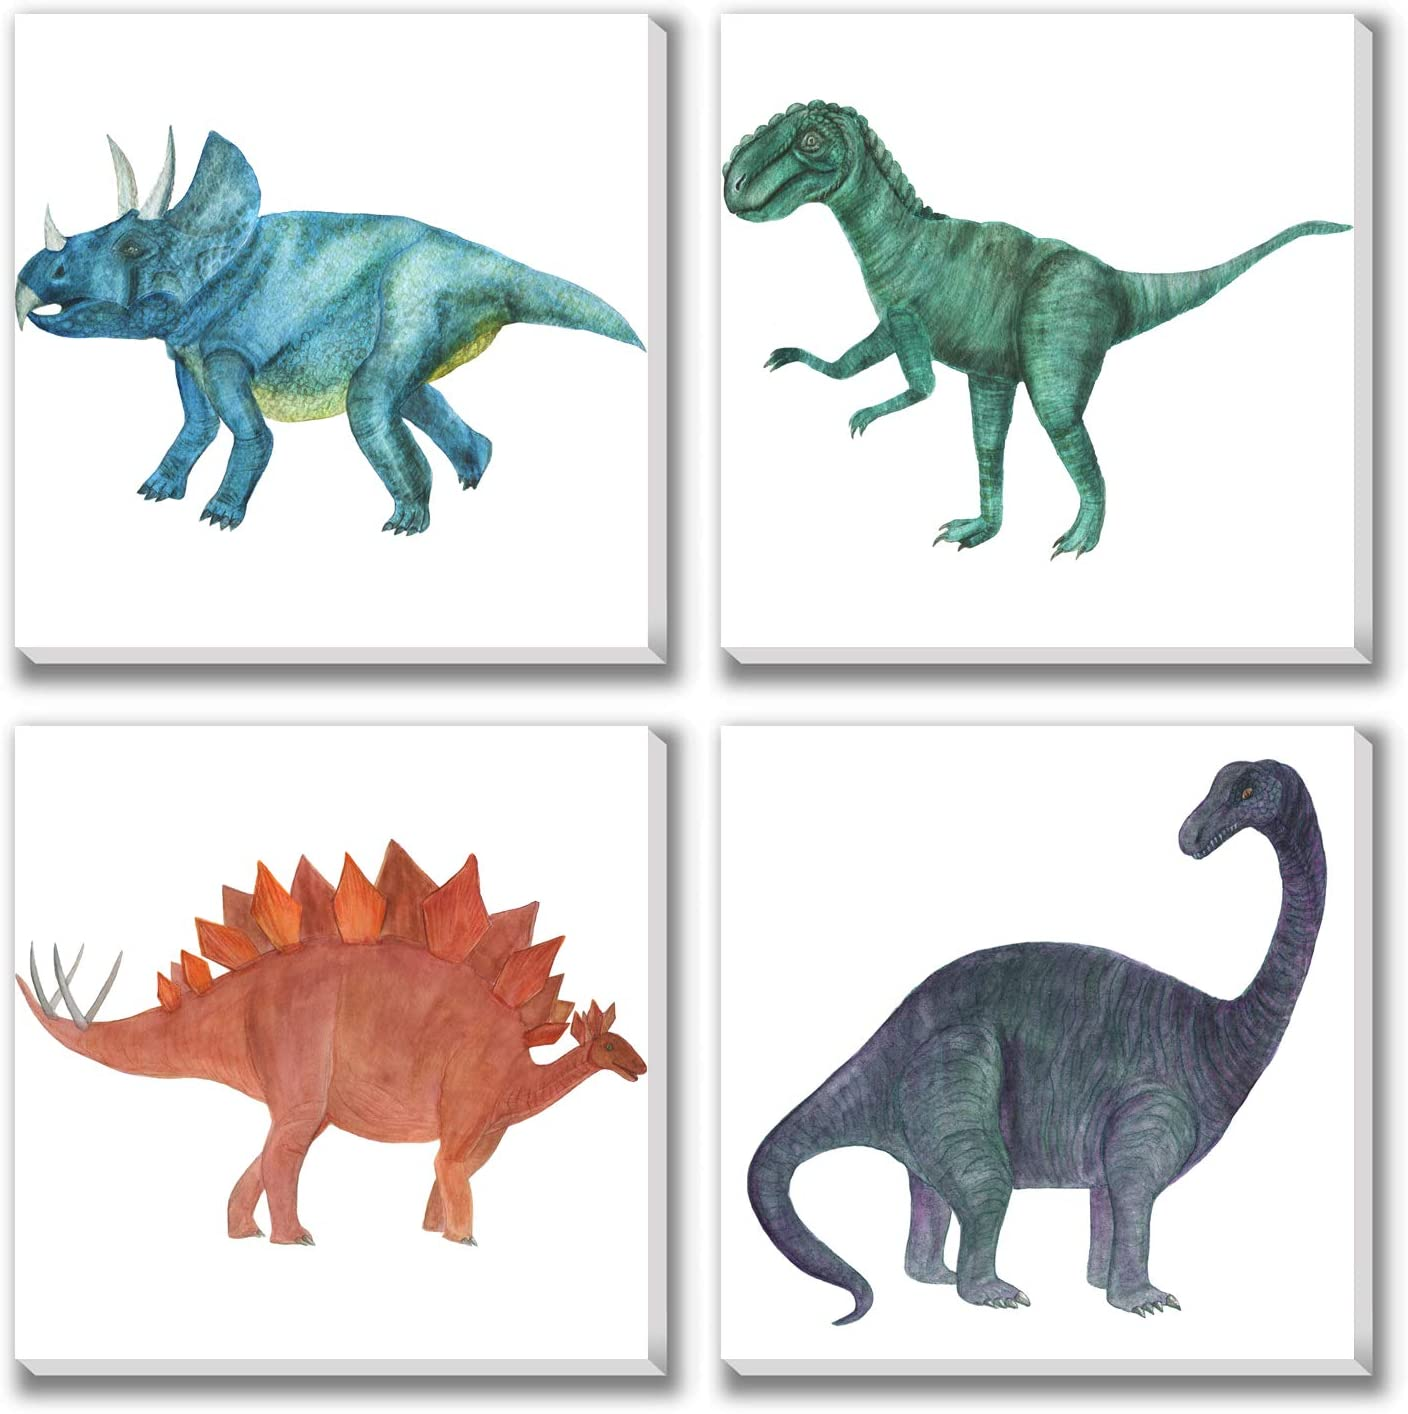 Texture of Dreams Boy Room Cool Dinosaur Painting Print on Canvas Wall Art Tyrannosaurus Stegosaurus Triceratops Painting Artwork Giclee Printing Wall Decor Home Decoration, 4 Pack (10